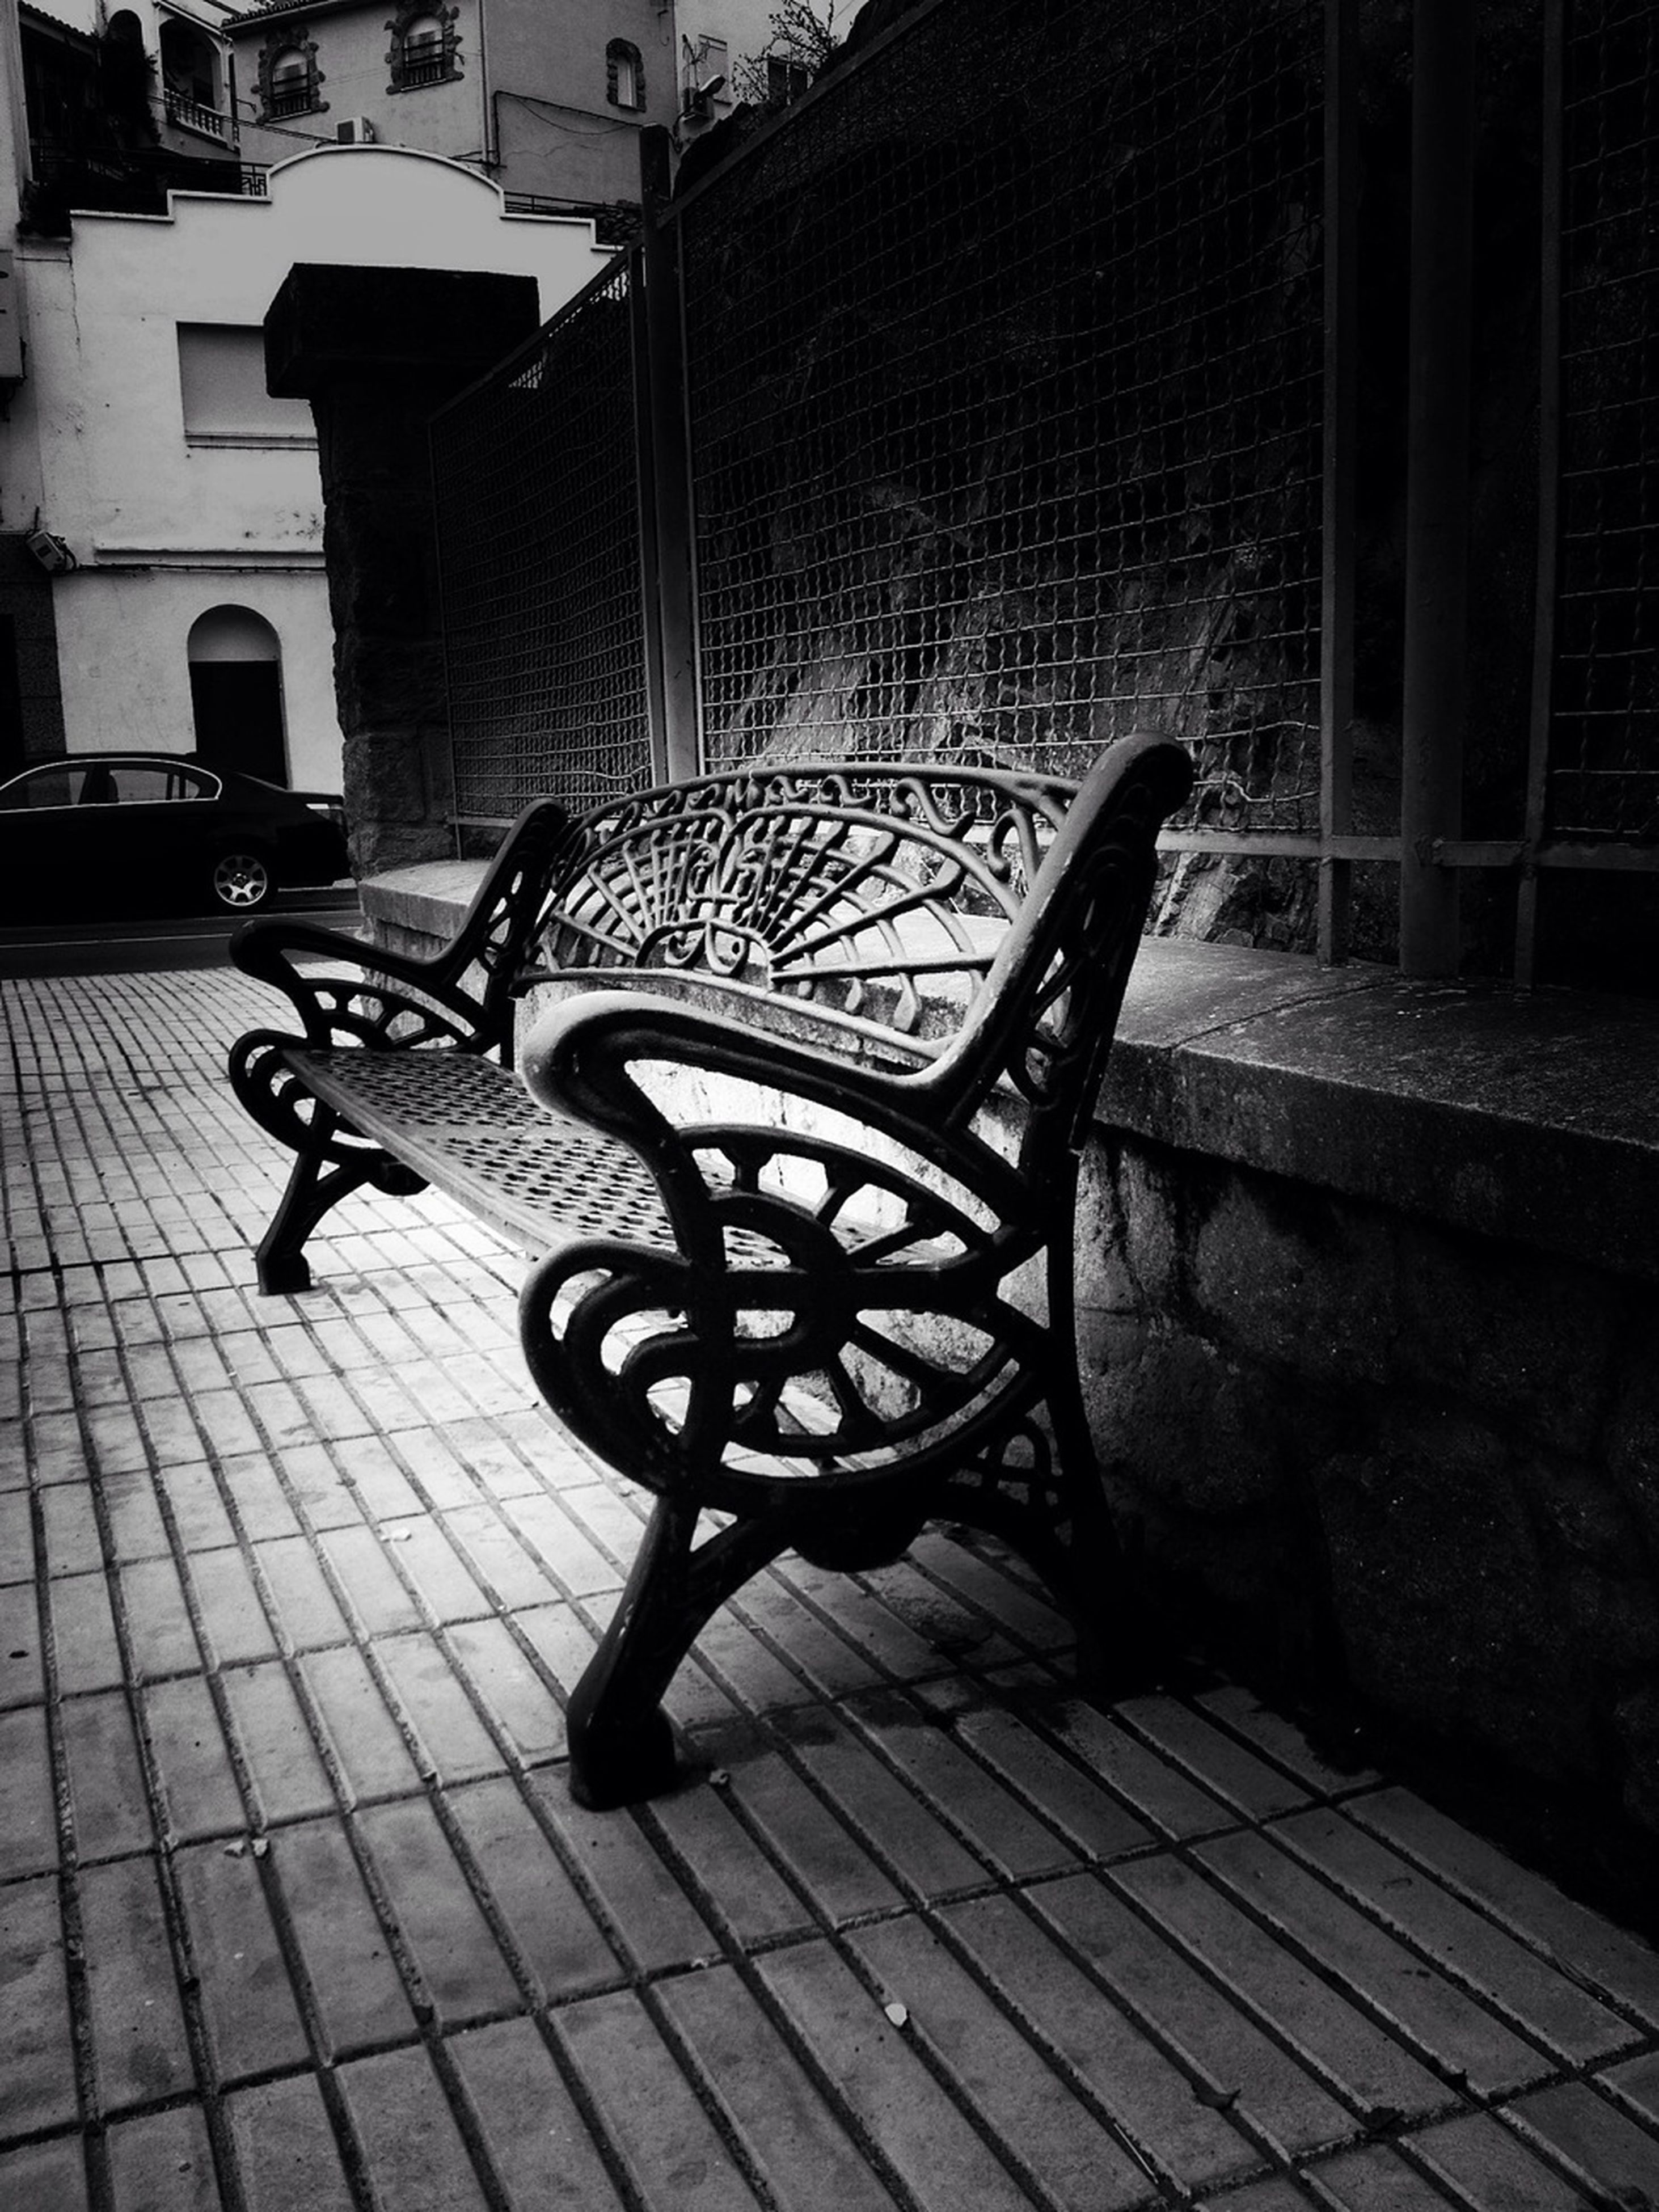 chair, absence, empty, built structure, cobblestone, building exterior, architecture, sidewalk, seat, bench, shadow, table, no people, paving stone, sunlight, flooring, day, wall - building feature, outdoors, tiled floor